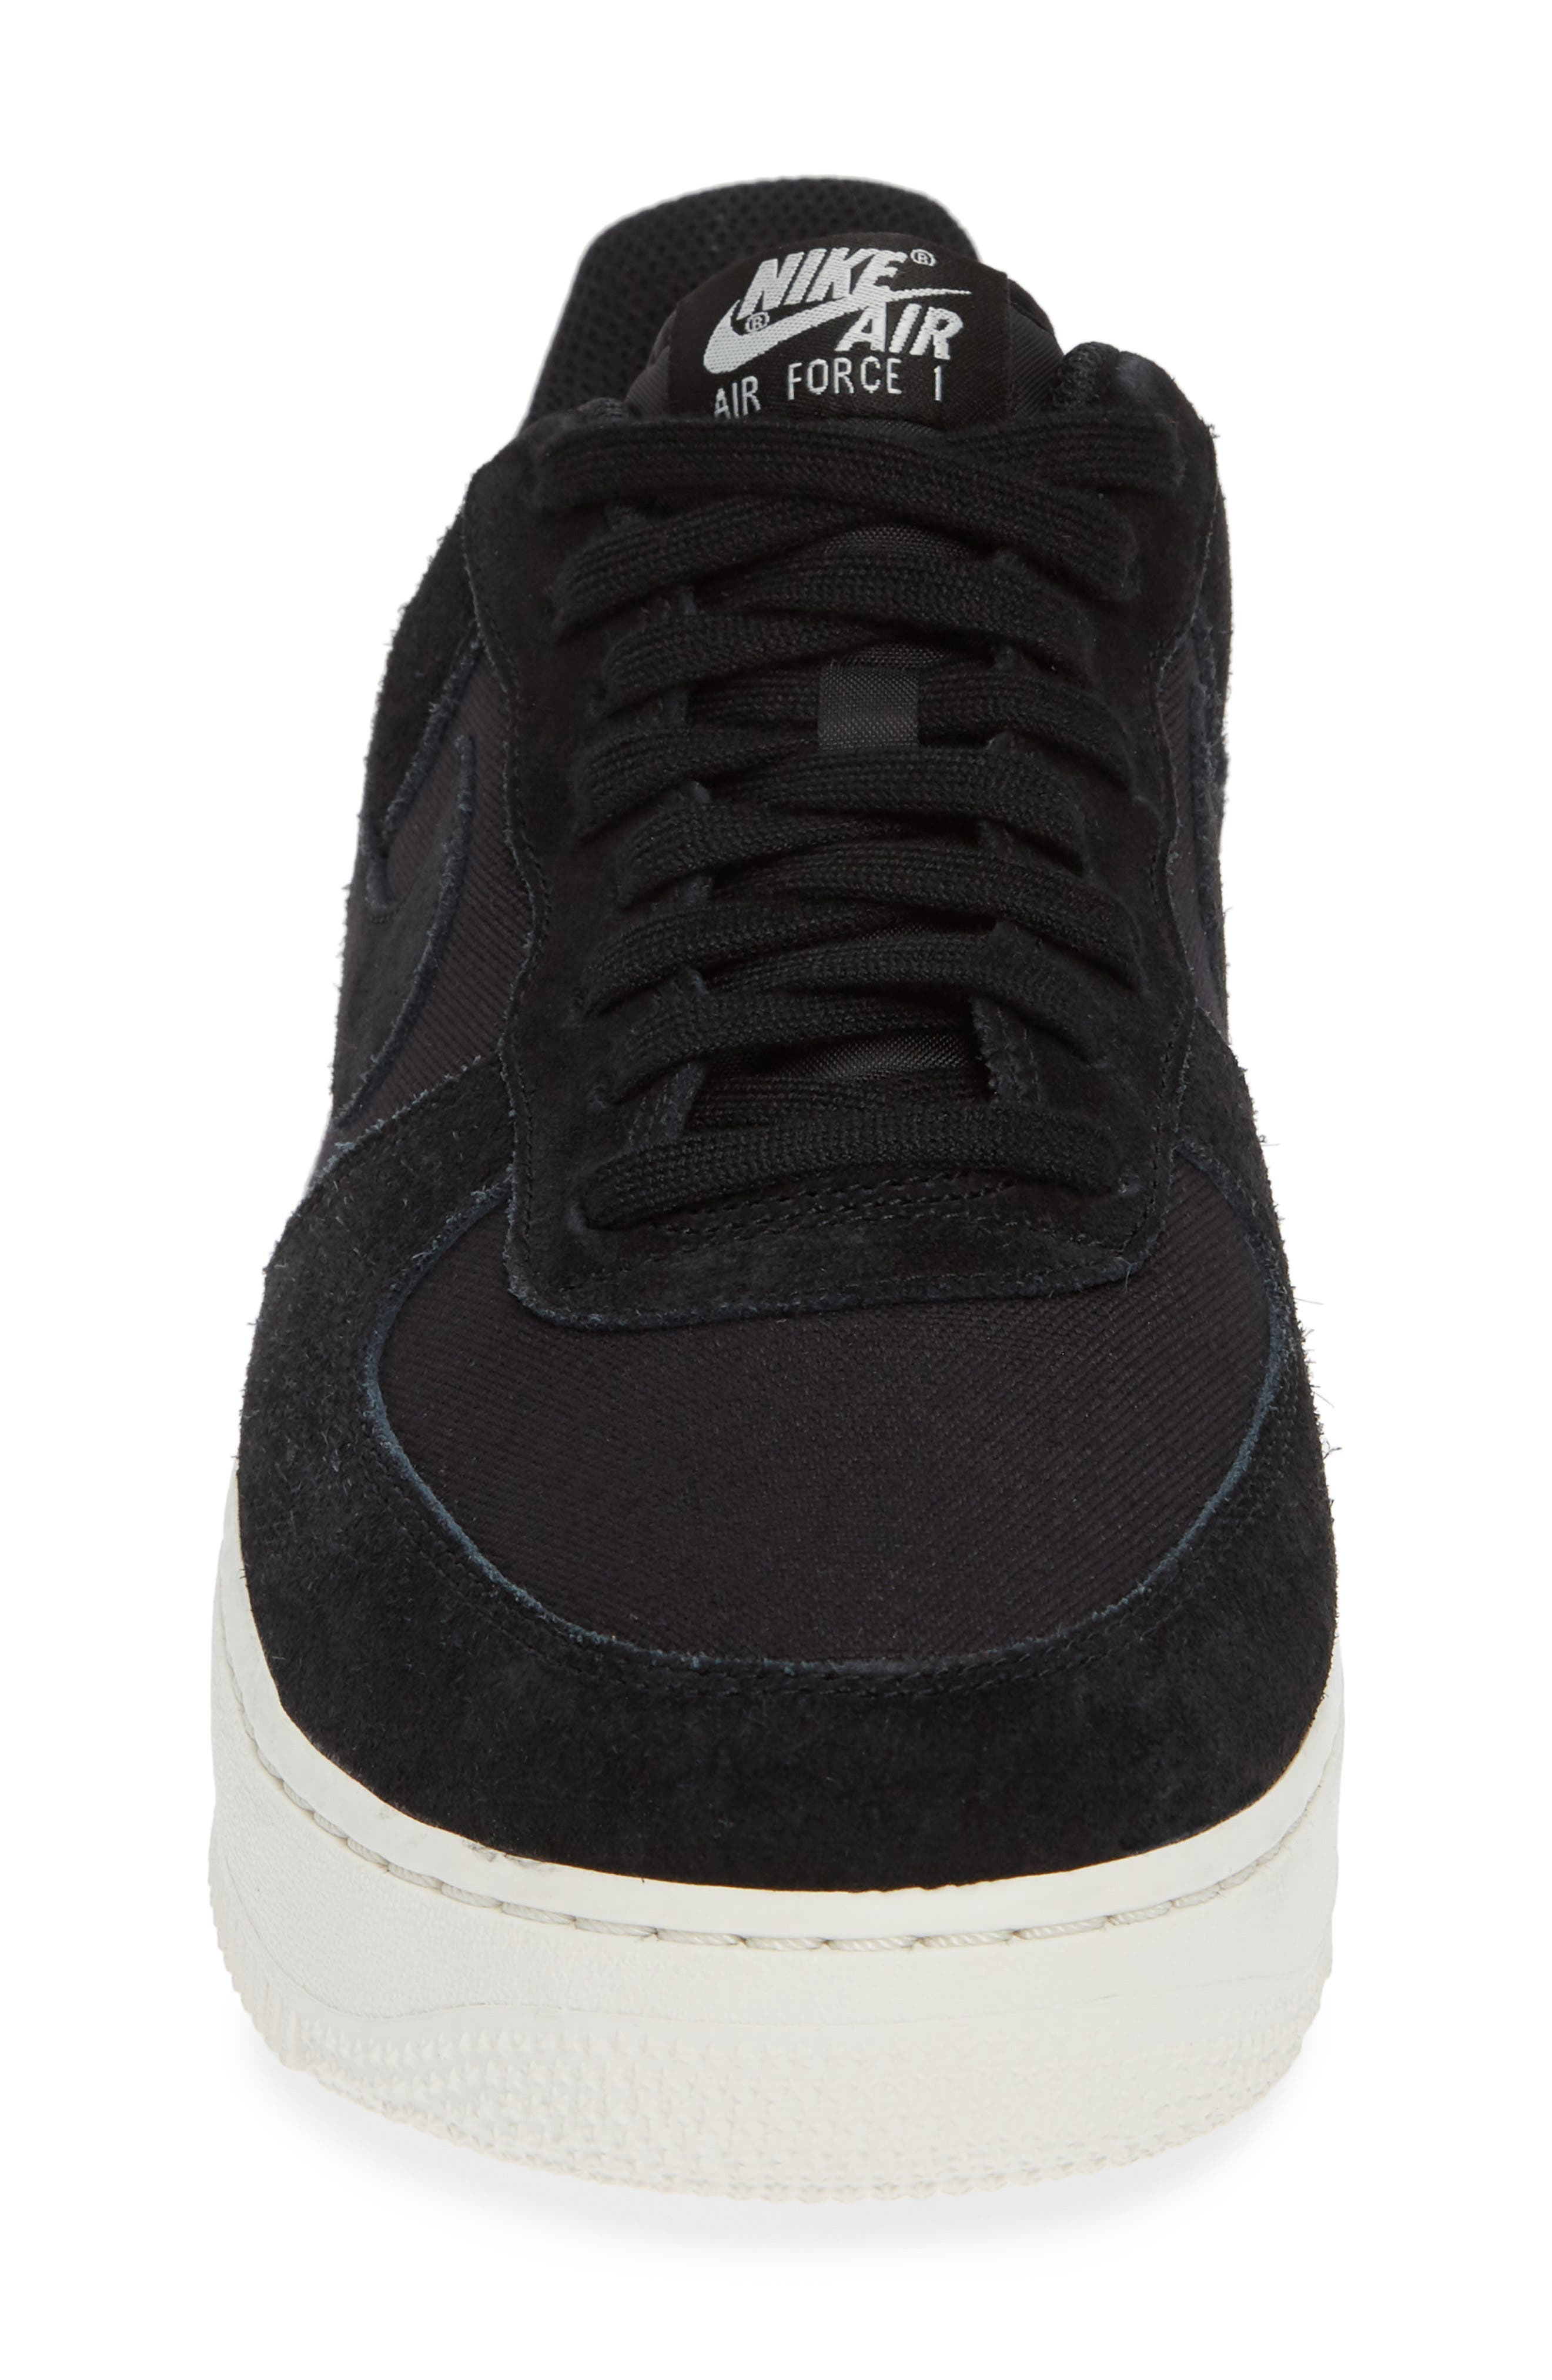 Air Force 1 '07 Suede Sneaker,                             Alternate thumbnail 4, color,                             BLACK/ SAIL